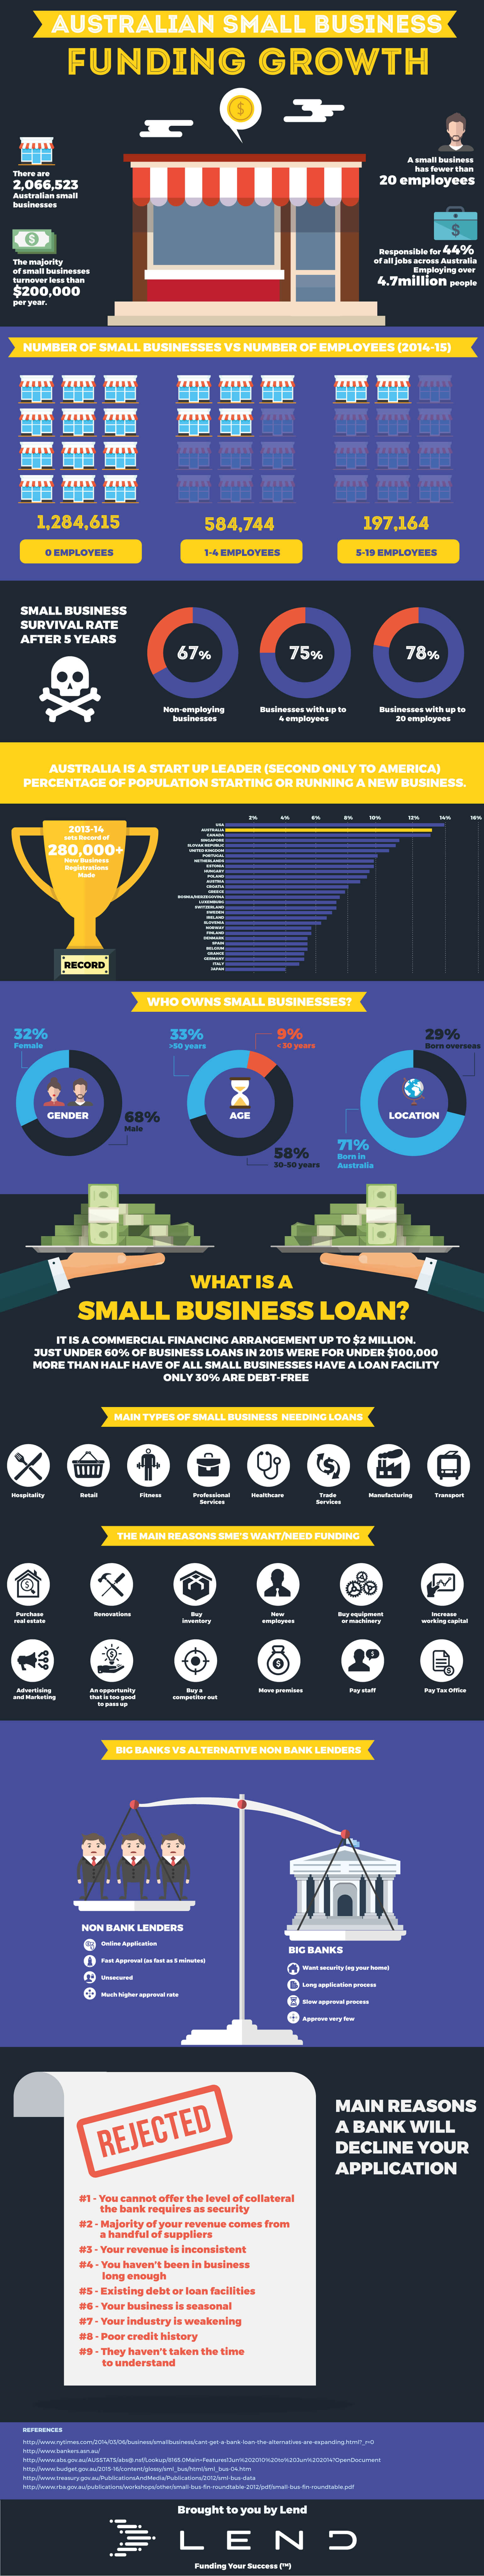 Australian Small Business & the Funding Challenges